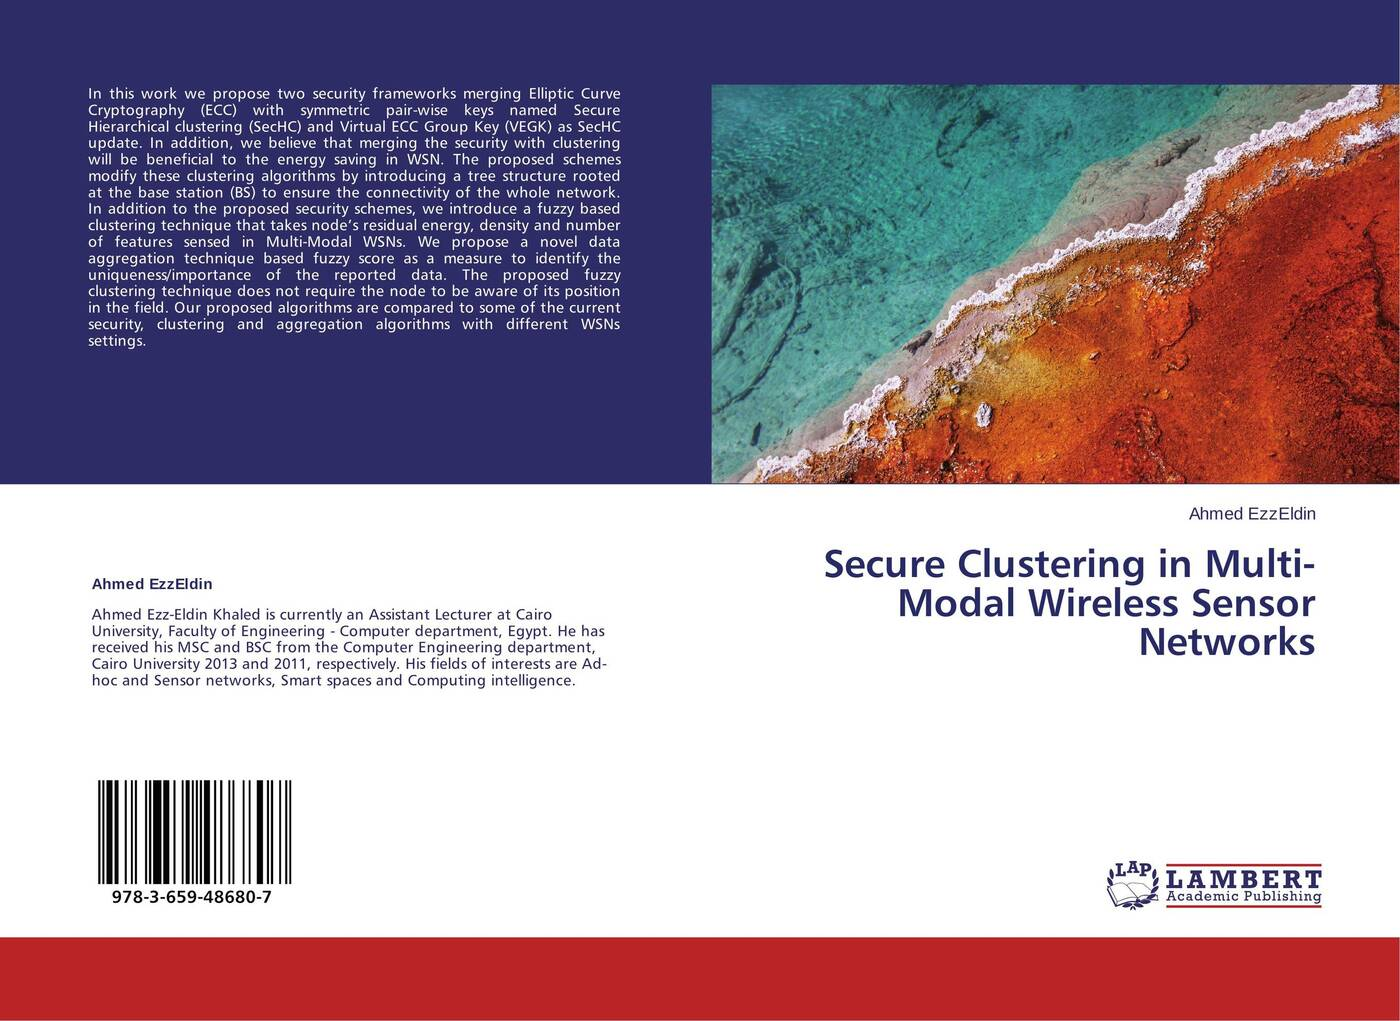 Ahmed EzzEldin Secure Clustering in Multi-Modal Wireless Sensor Networks цены